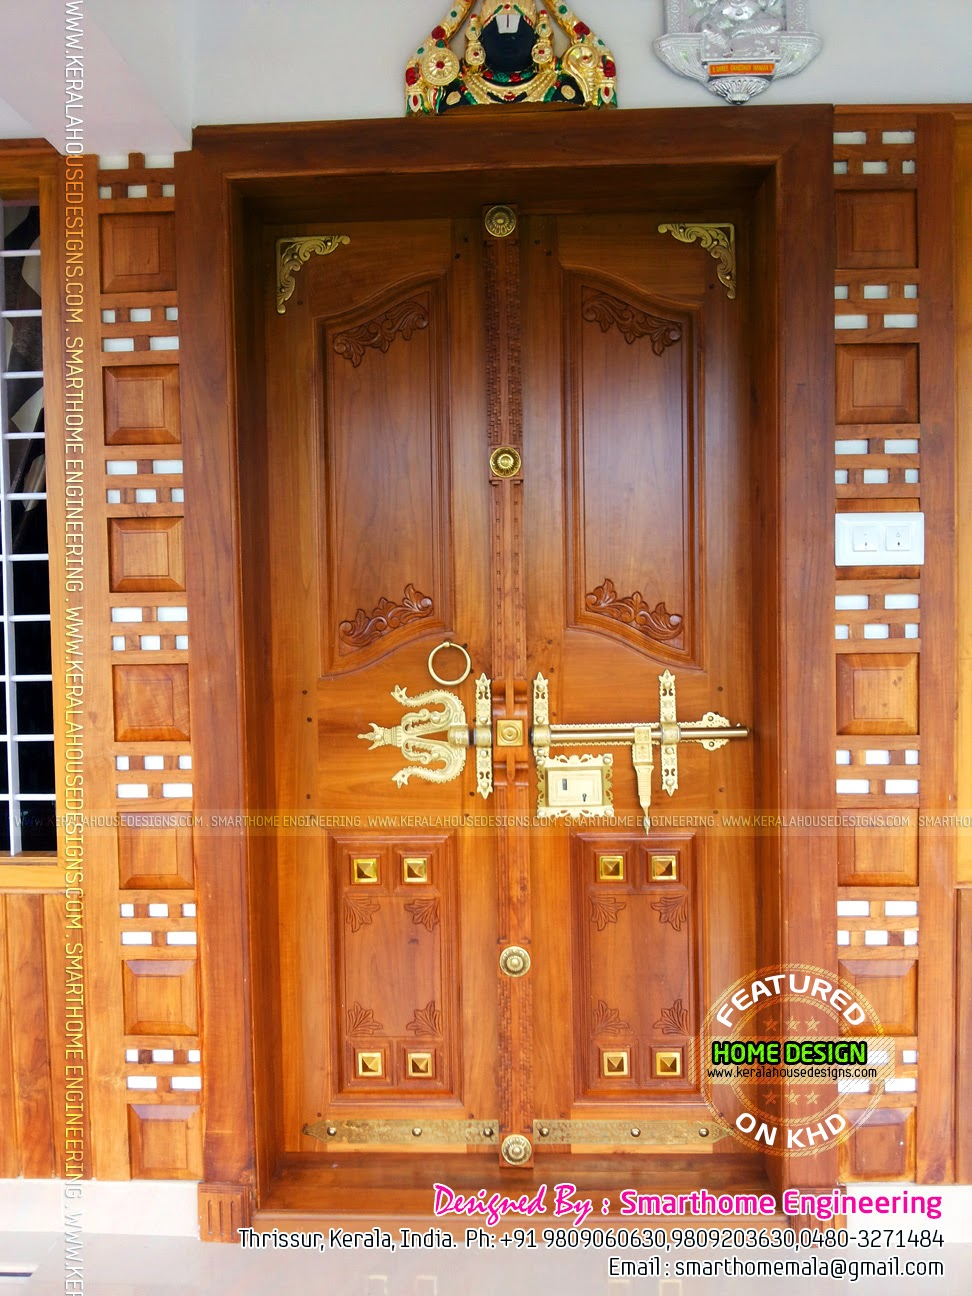 Main Door Design Door Design Modern Wood: Home Design Interior Singapore: Furnished House With Photos